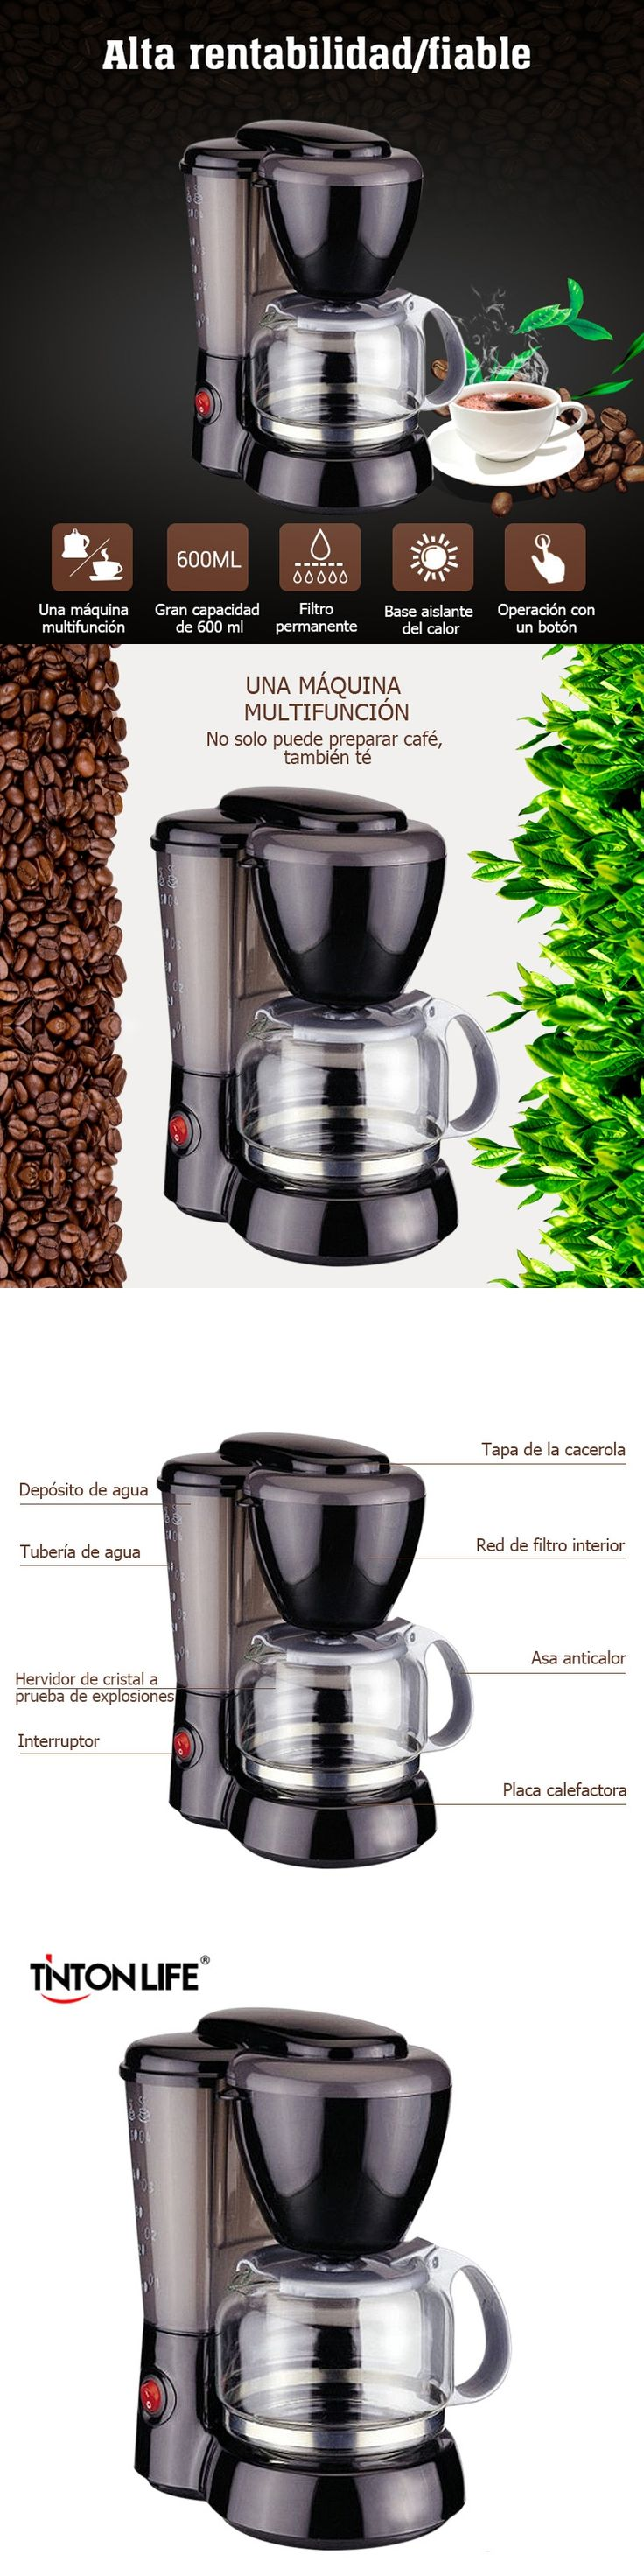 TINTON LIFE High-quality Automatic Espresso Electric Coffee Maker Drip Coffee Machine